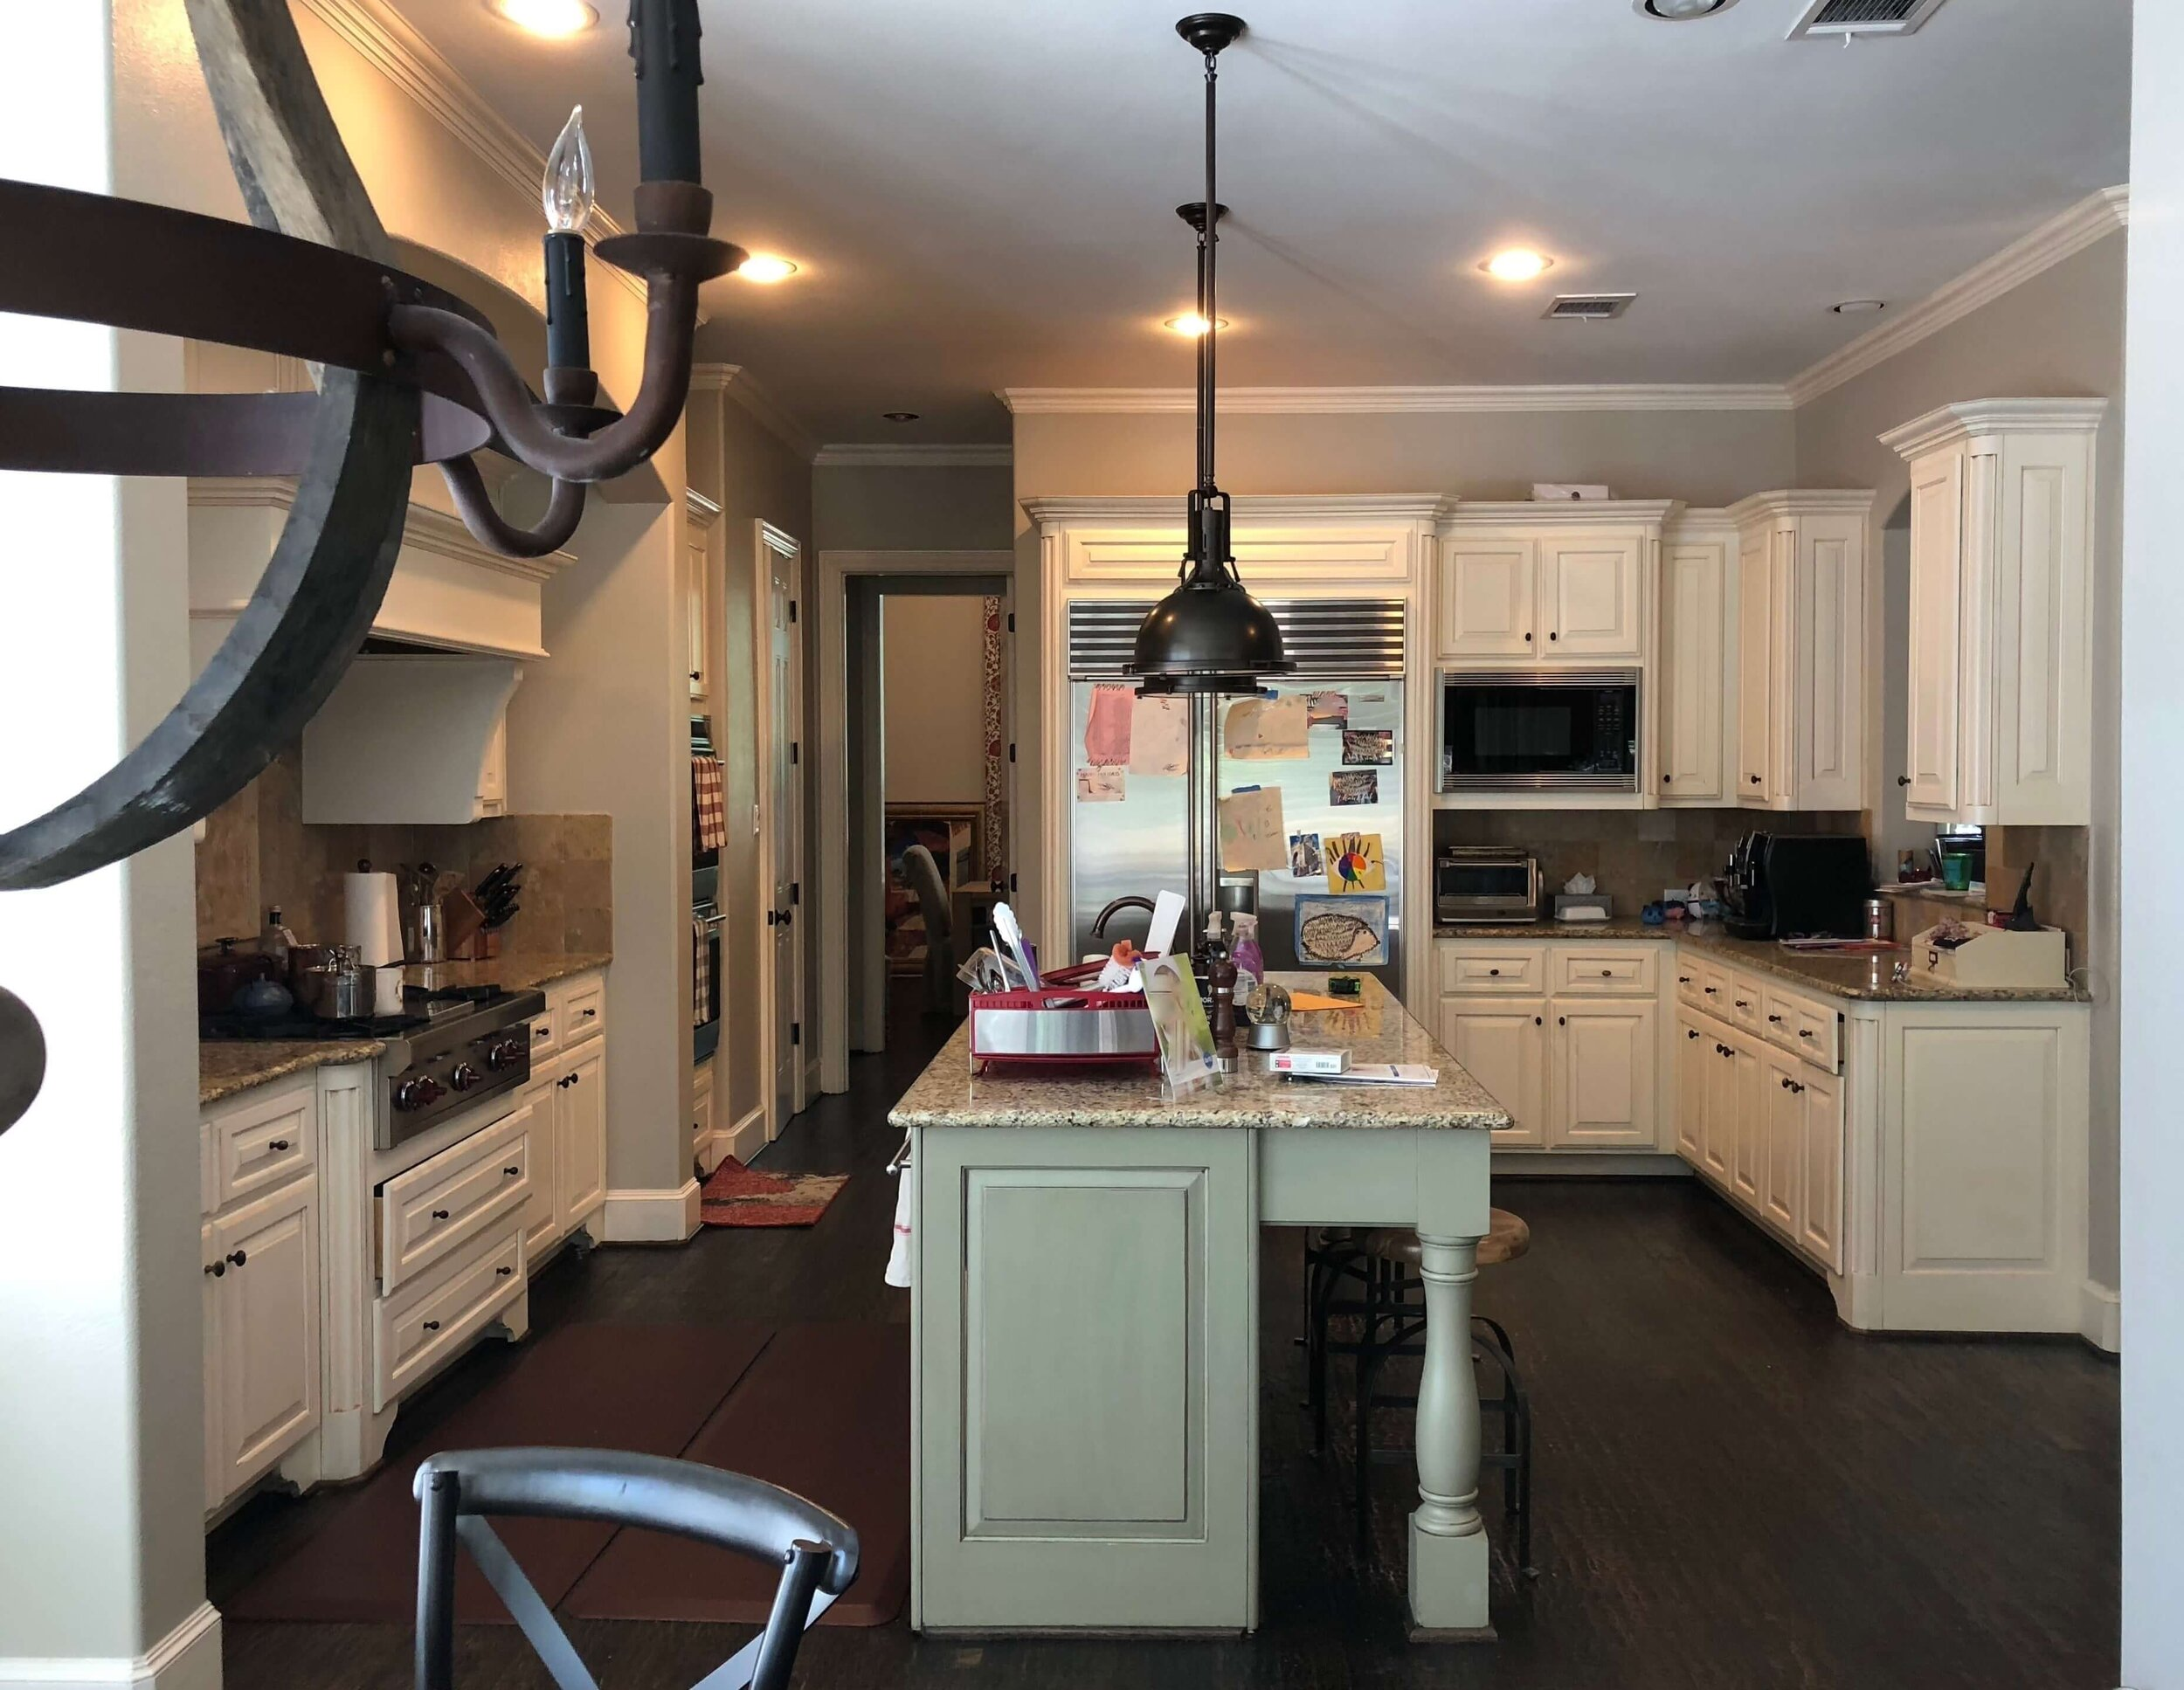 Best Kitchen Paint Colors From Sherwin Williams Near 77346 Zip Code